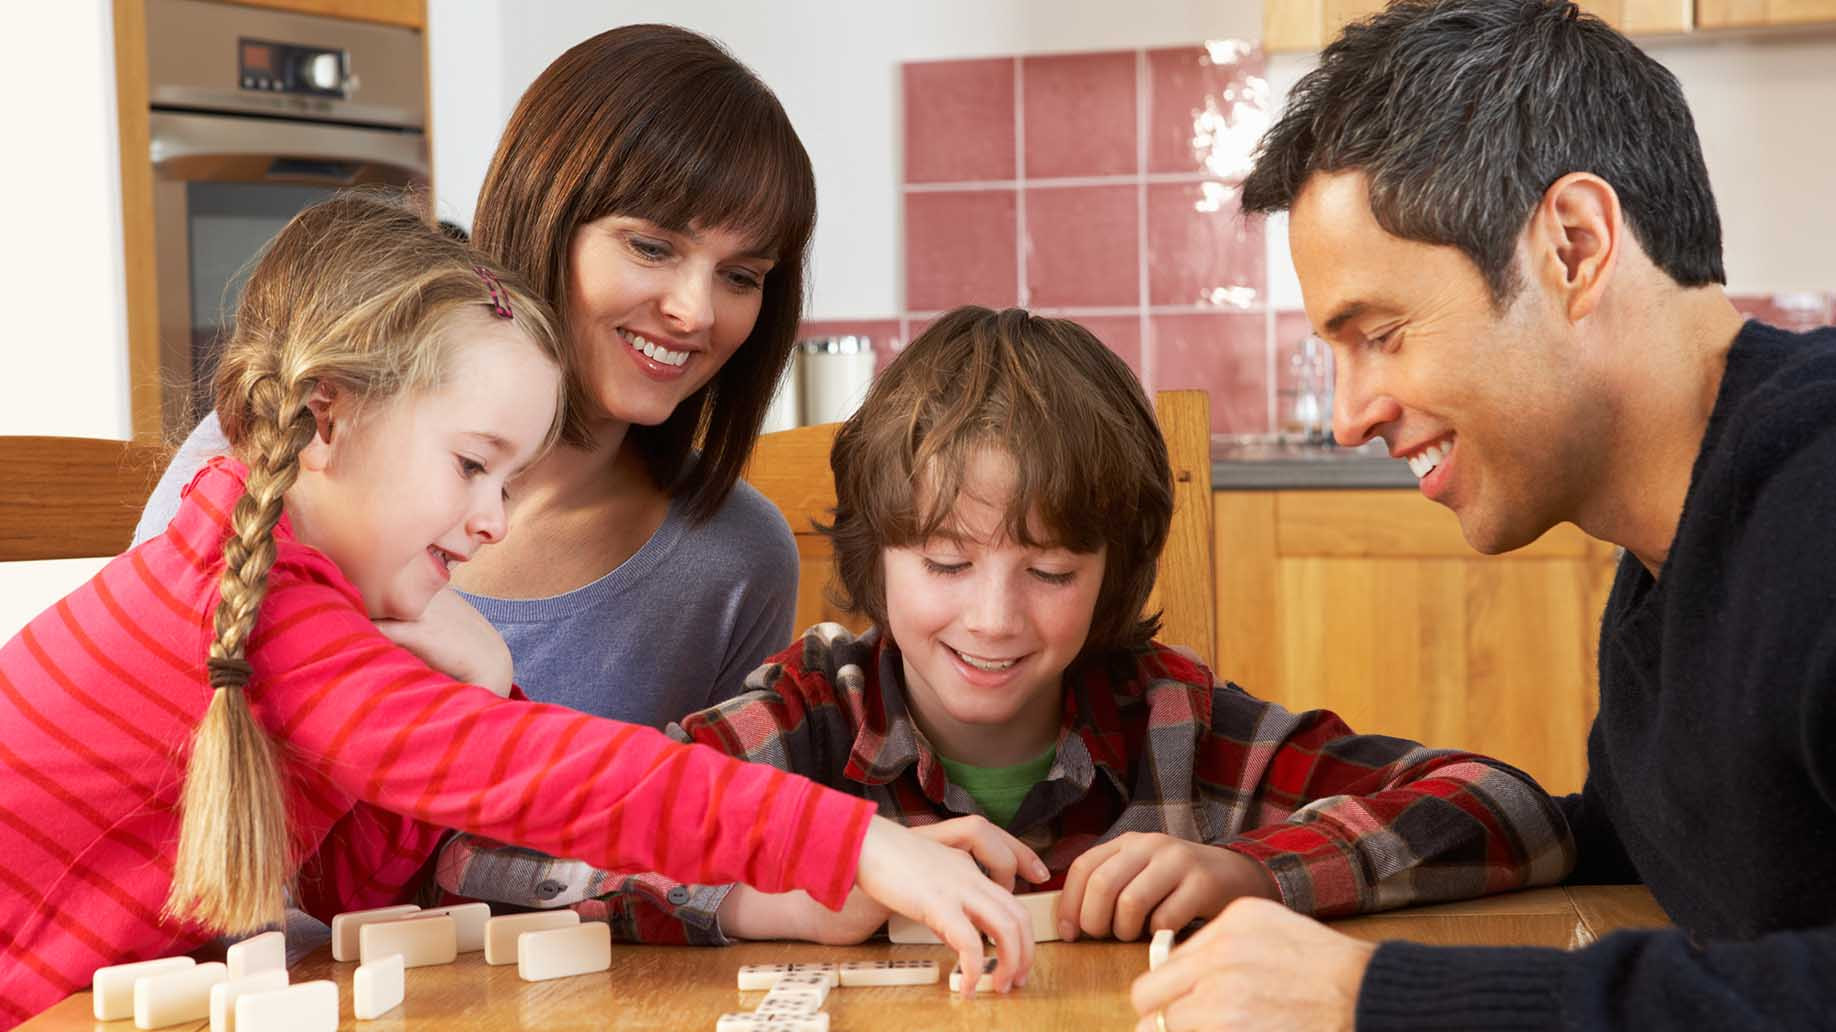 Best Of 15 Family Game Night Ideas & Board Games Fun & Cheap Board Games to Play with Family Of Incredible 45 Ideas Board Games to Play with Family